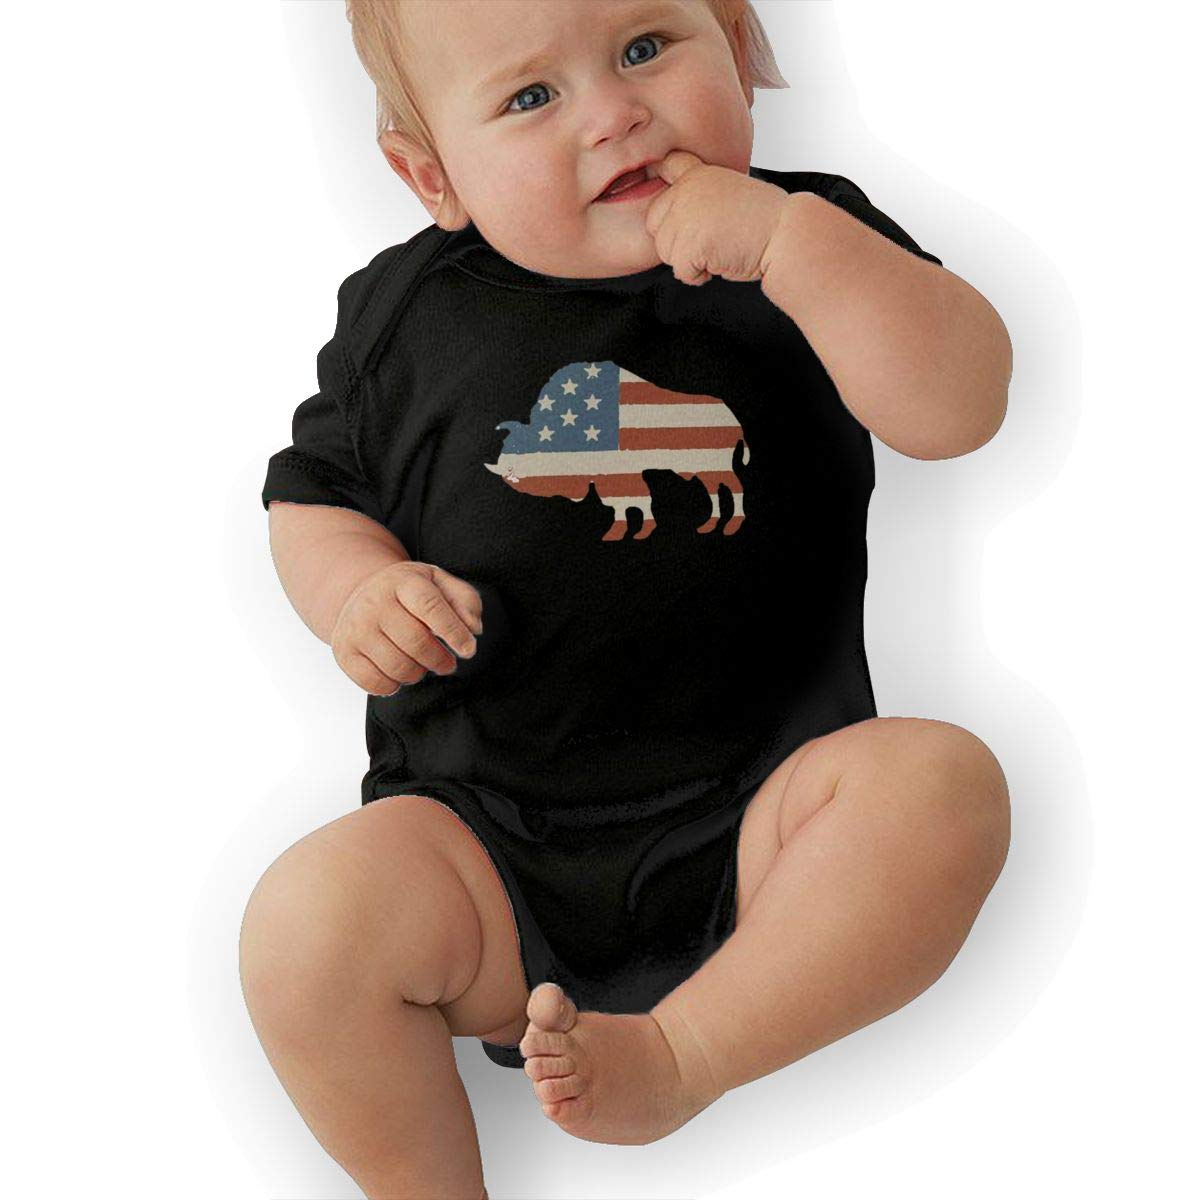 American Flag Bison Baby Pajamas Bodysuits Clothes Onesies Jumpsuits Outfits Black